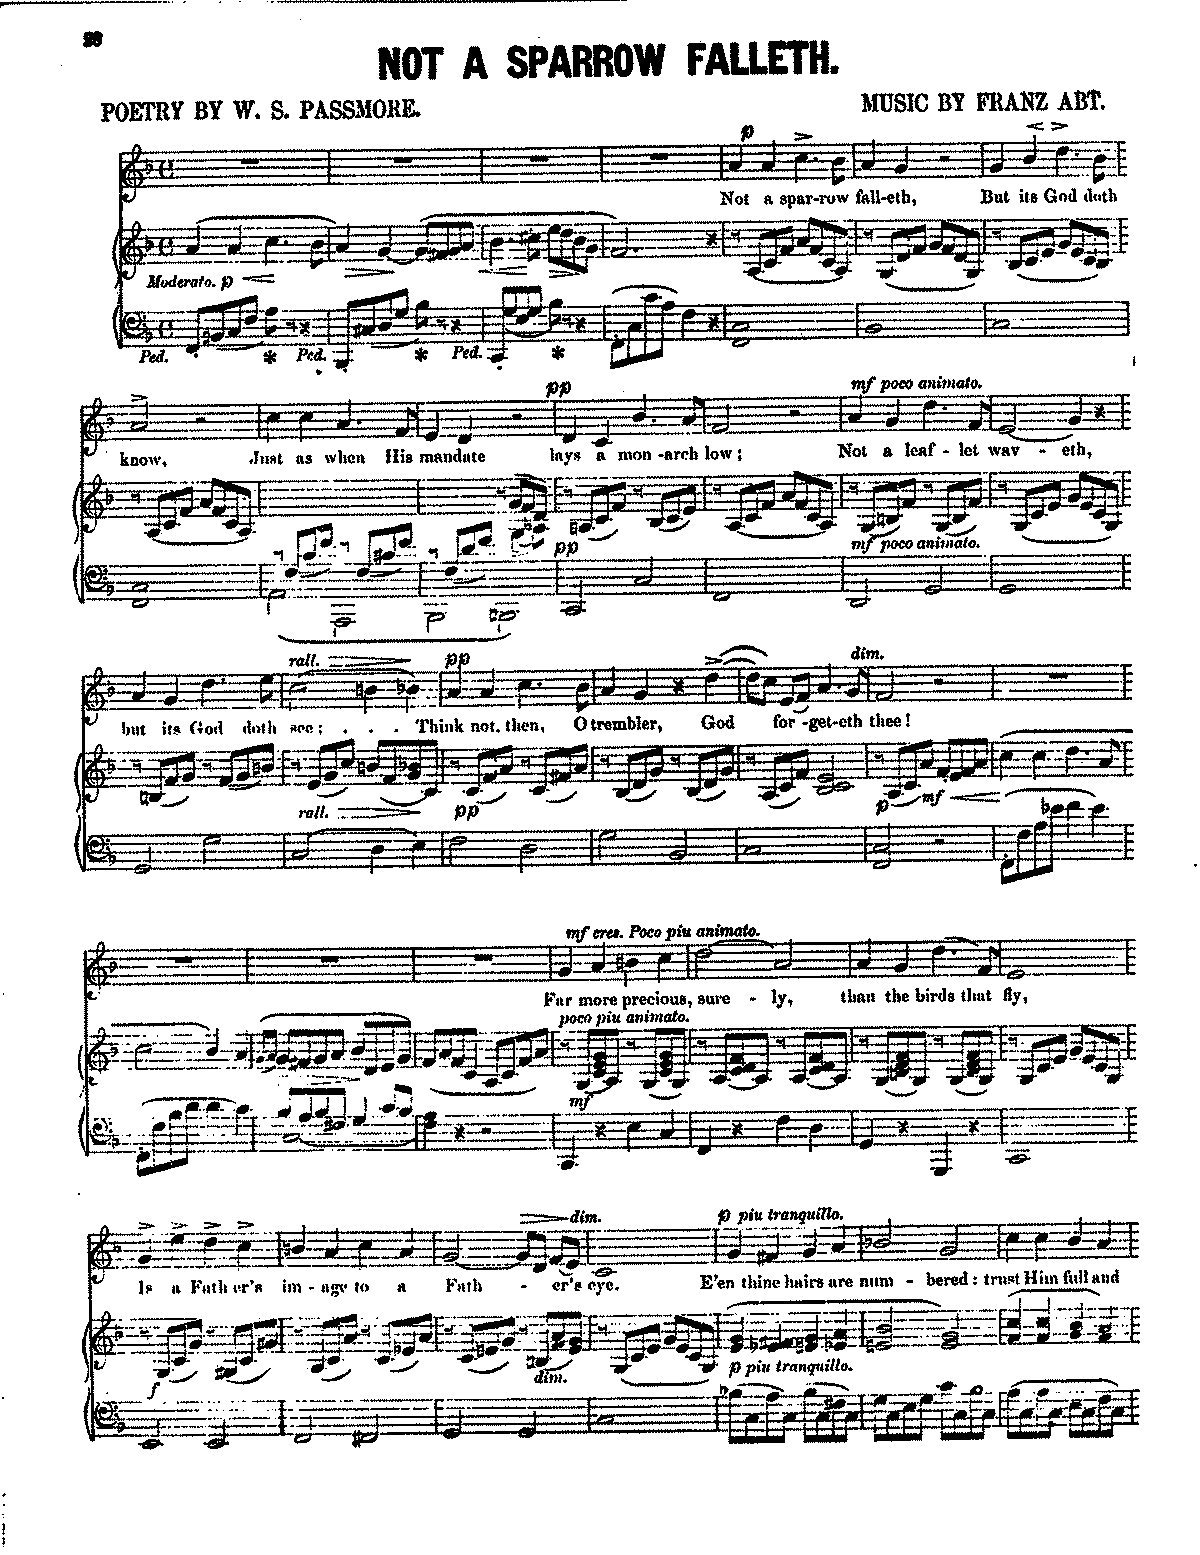 PMLP296775-Abt Not a sparrow falleth Op.433-2 (in Superb Songs).pdf